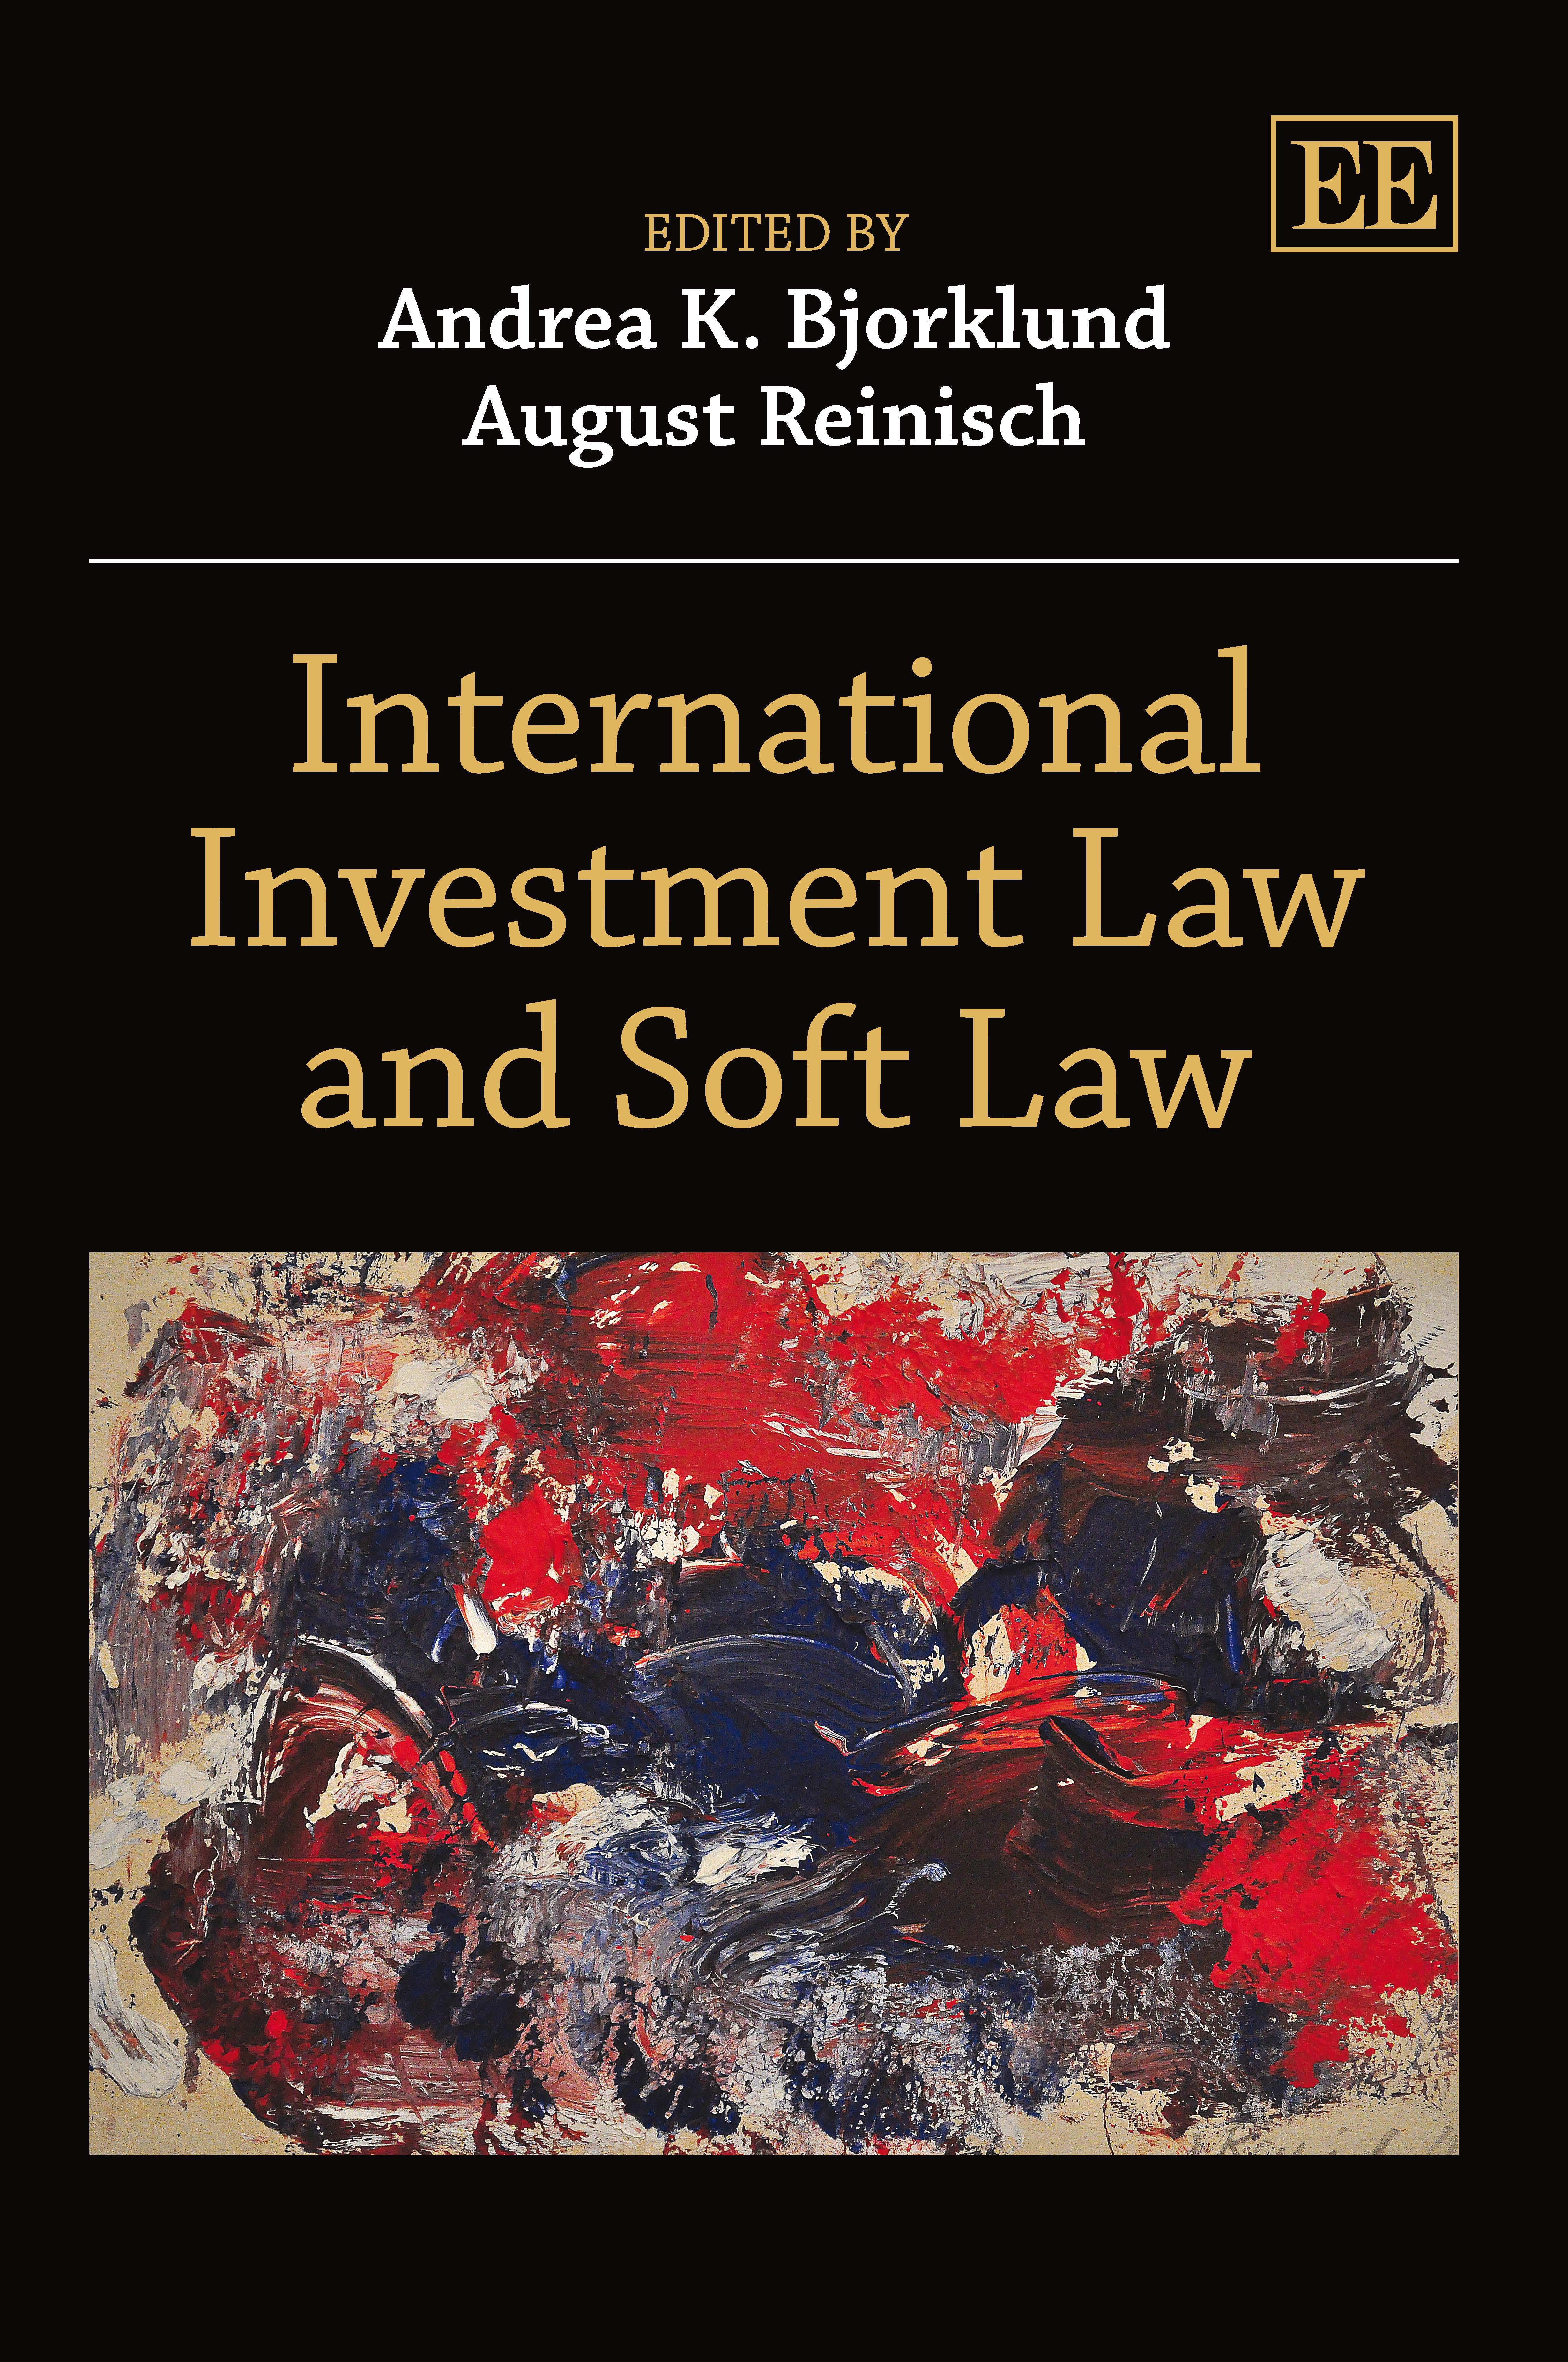 Download Ebook International Investment Law and Soft Law by Andrea K. Bjorklund Pdf